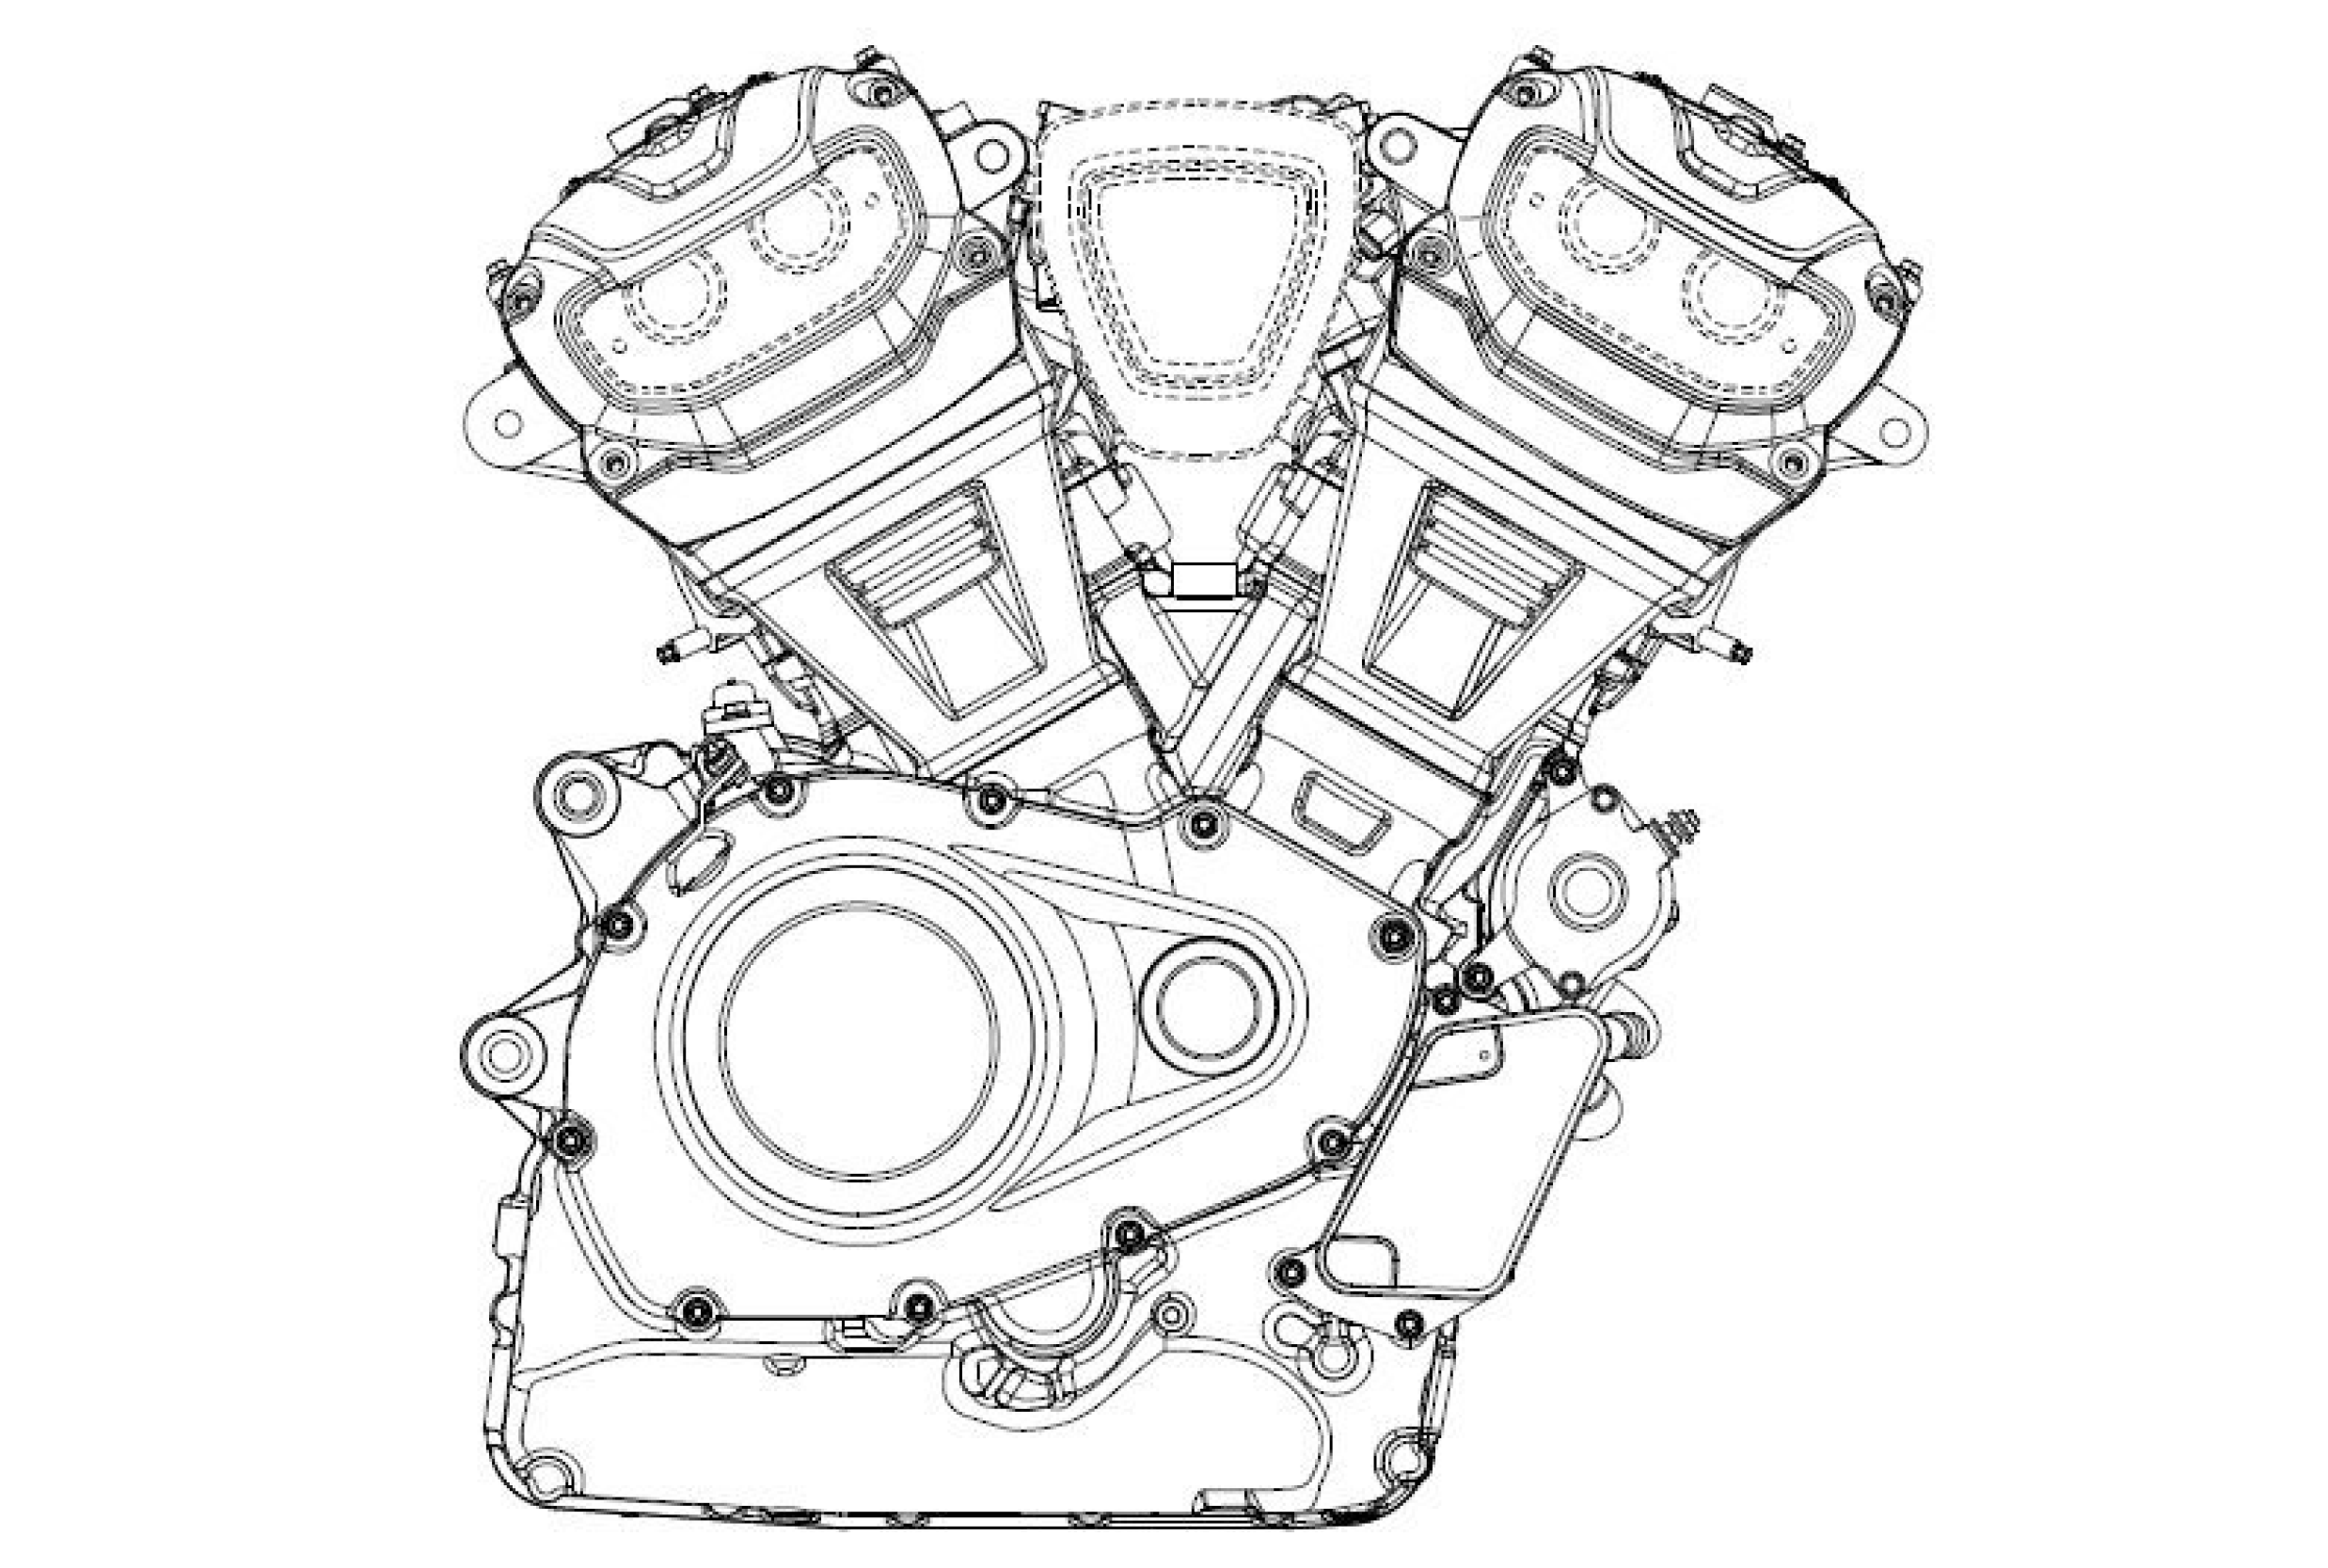 Harley Files Design Paperwork For New Middleweight Engine